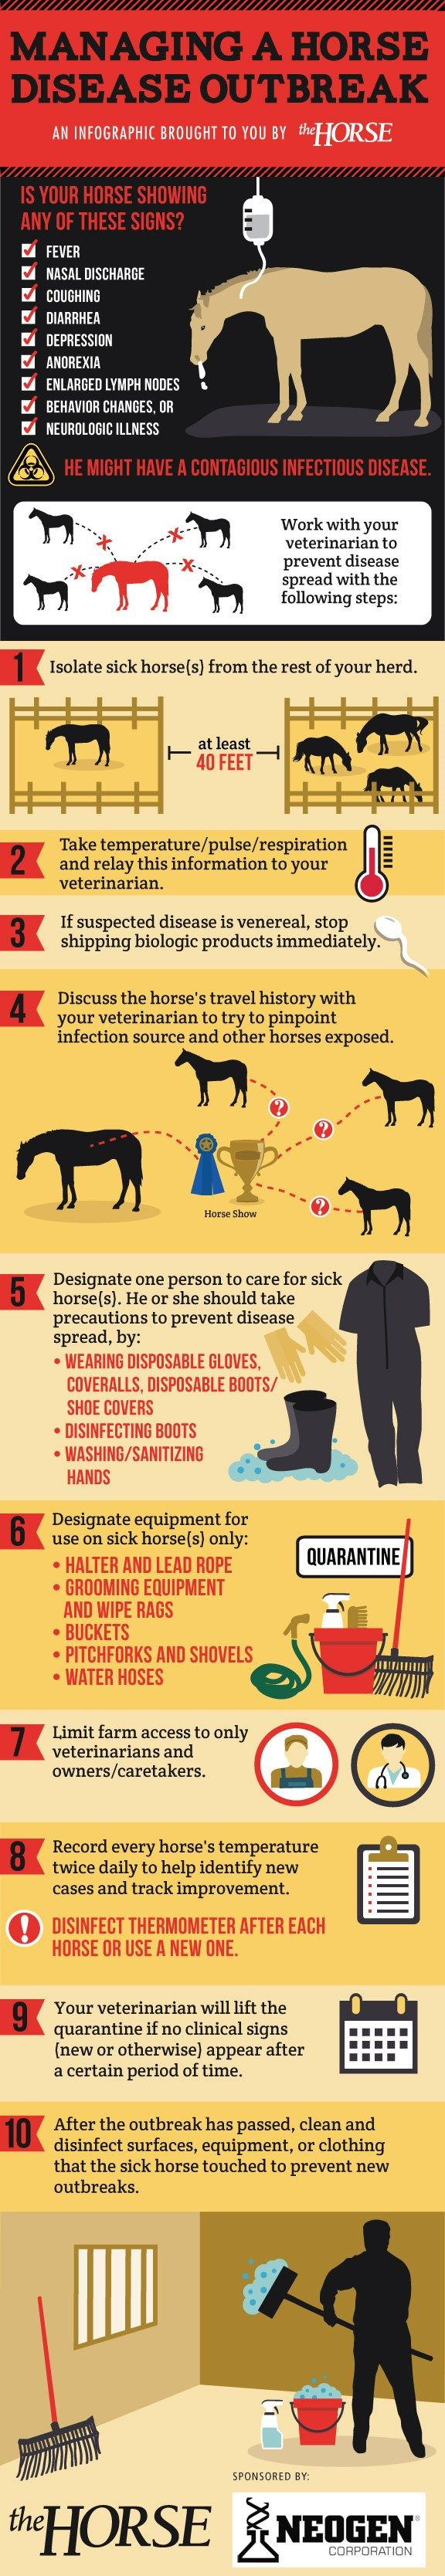 Infographic: Managing A Horse Disease Outbreak